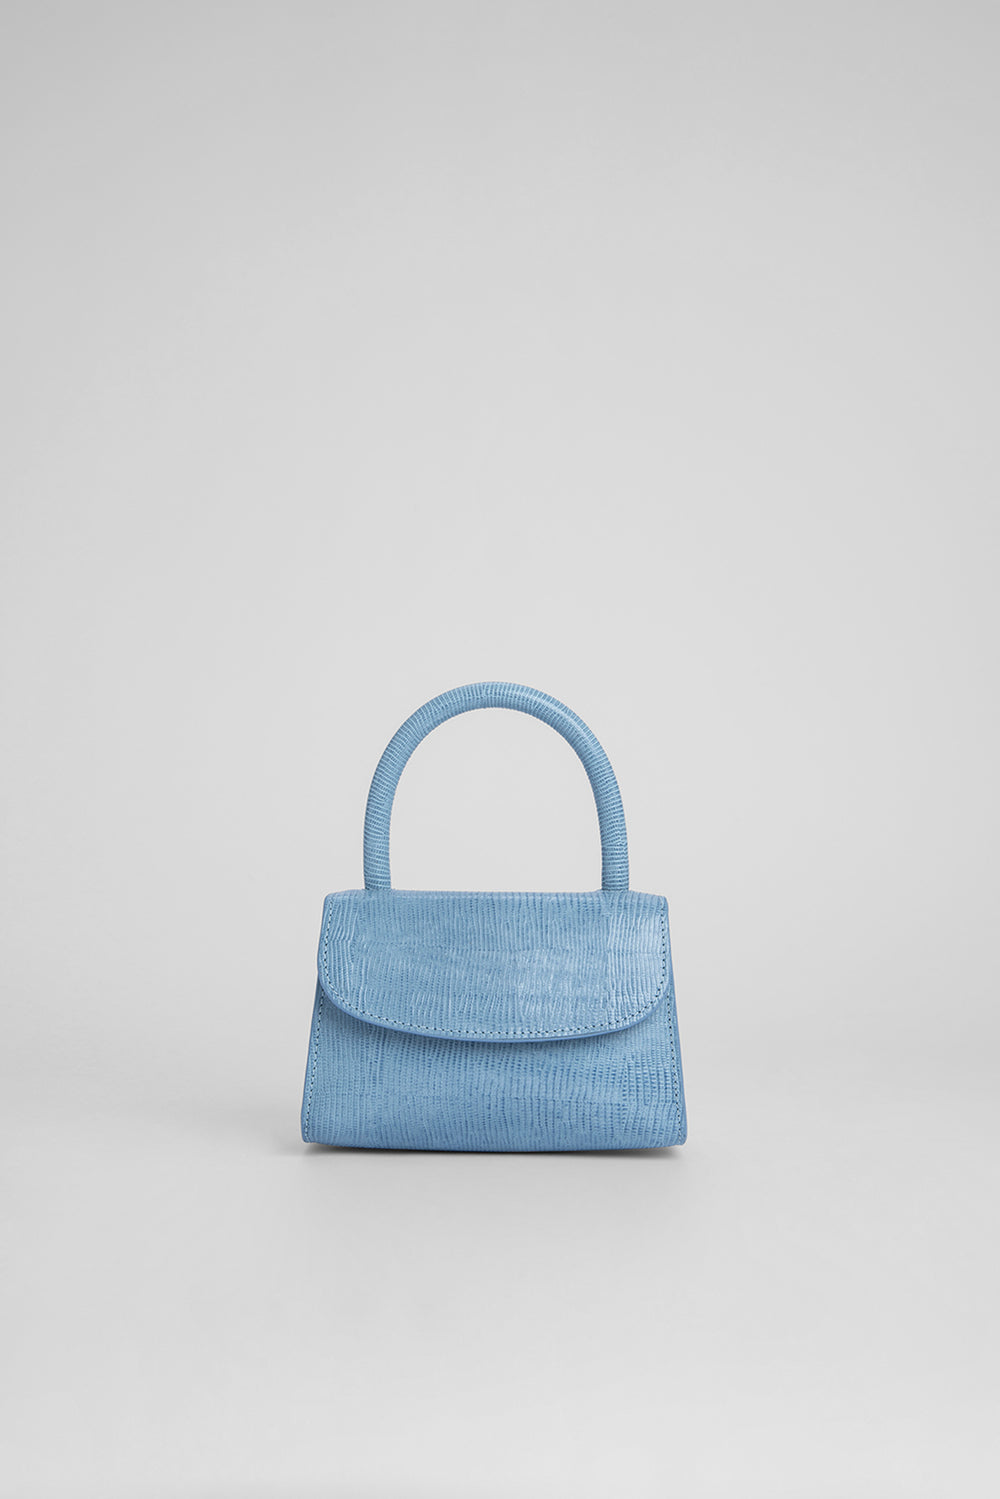 Mini Sky Blue Lizard Embossed Leather